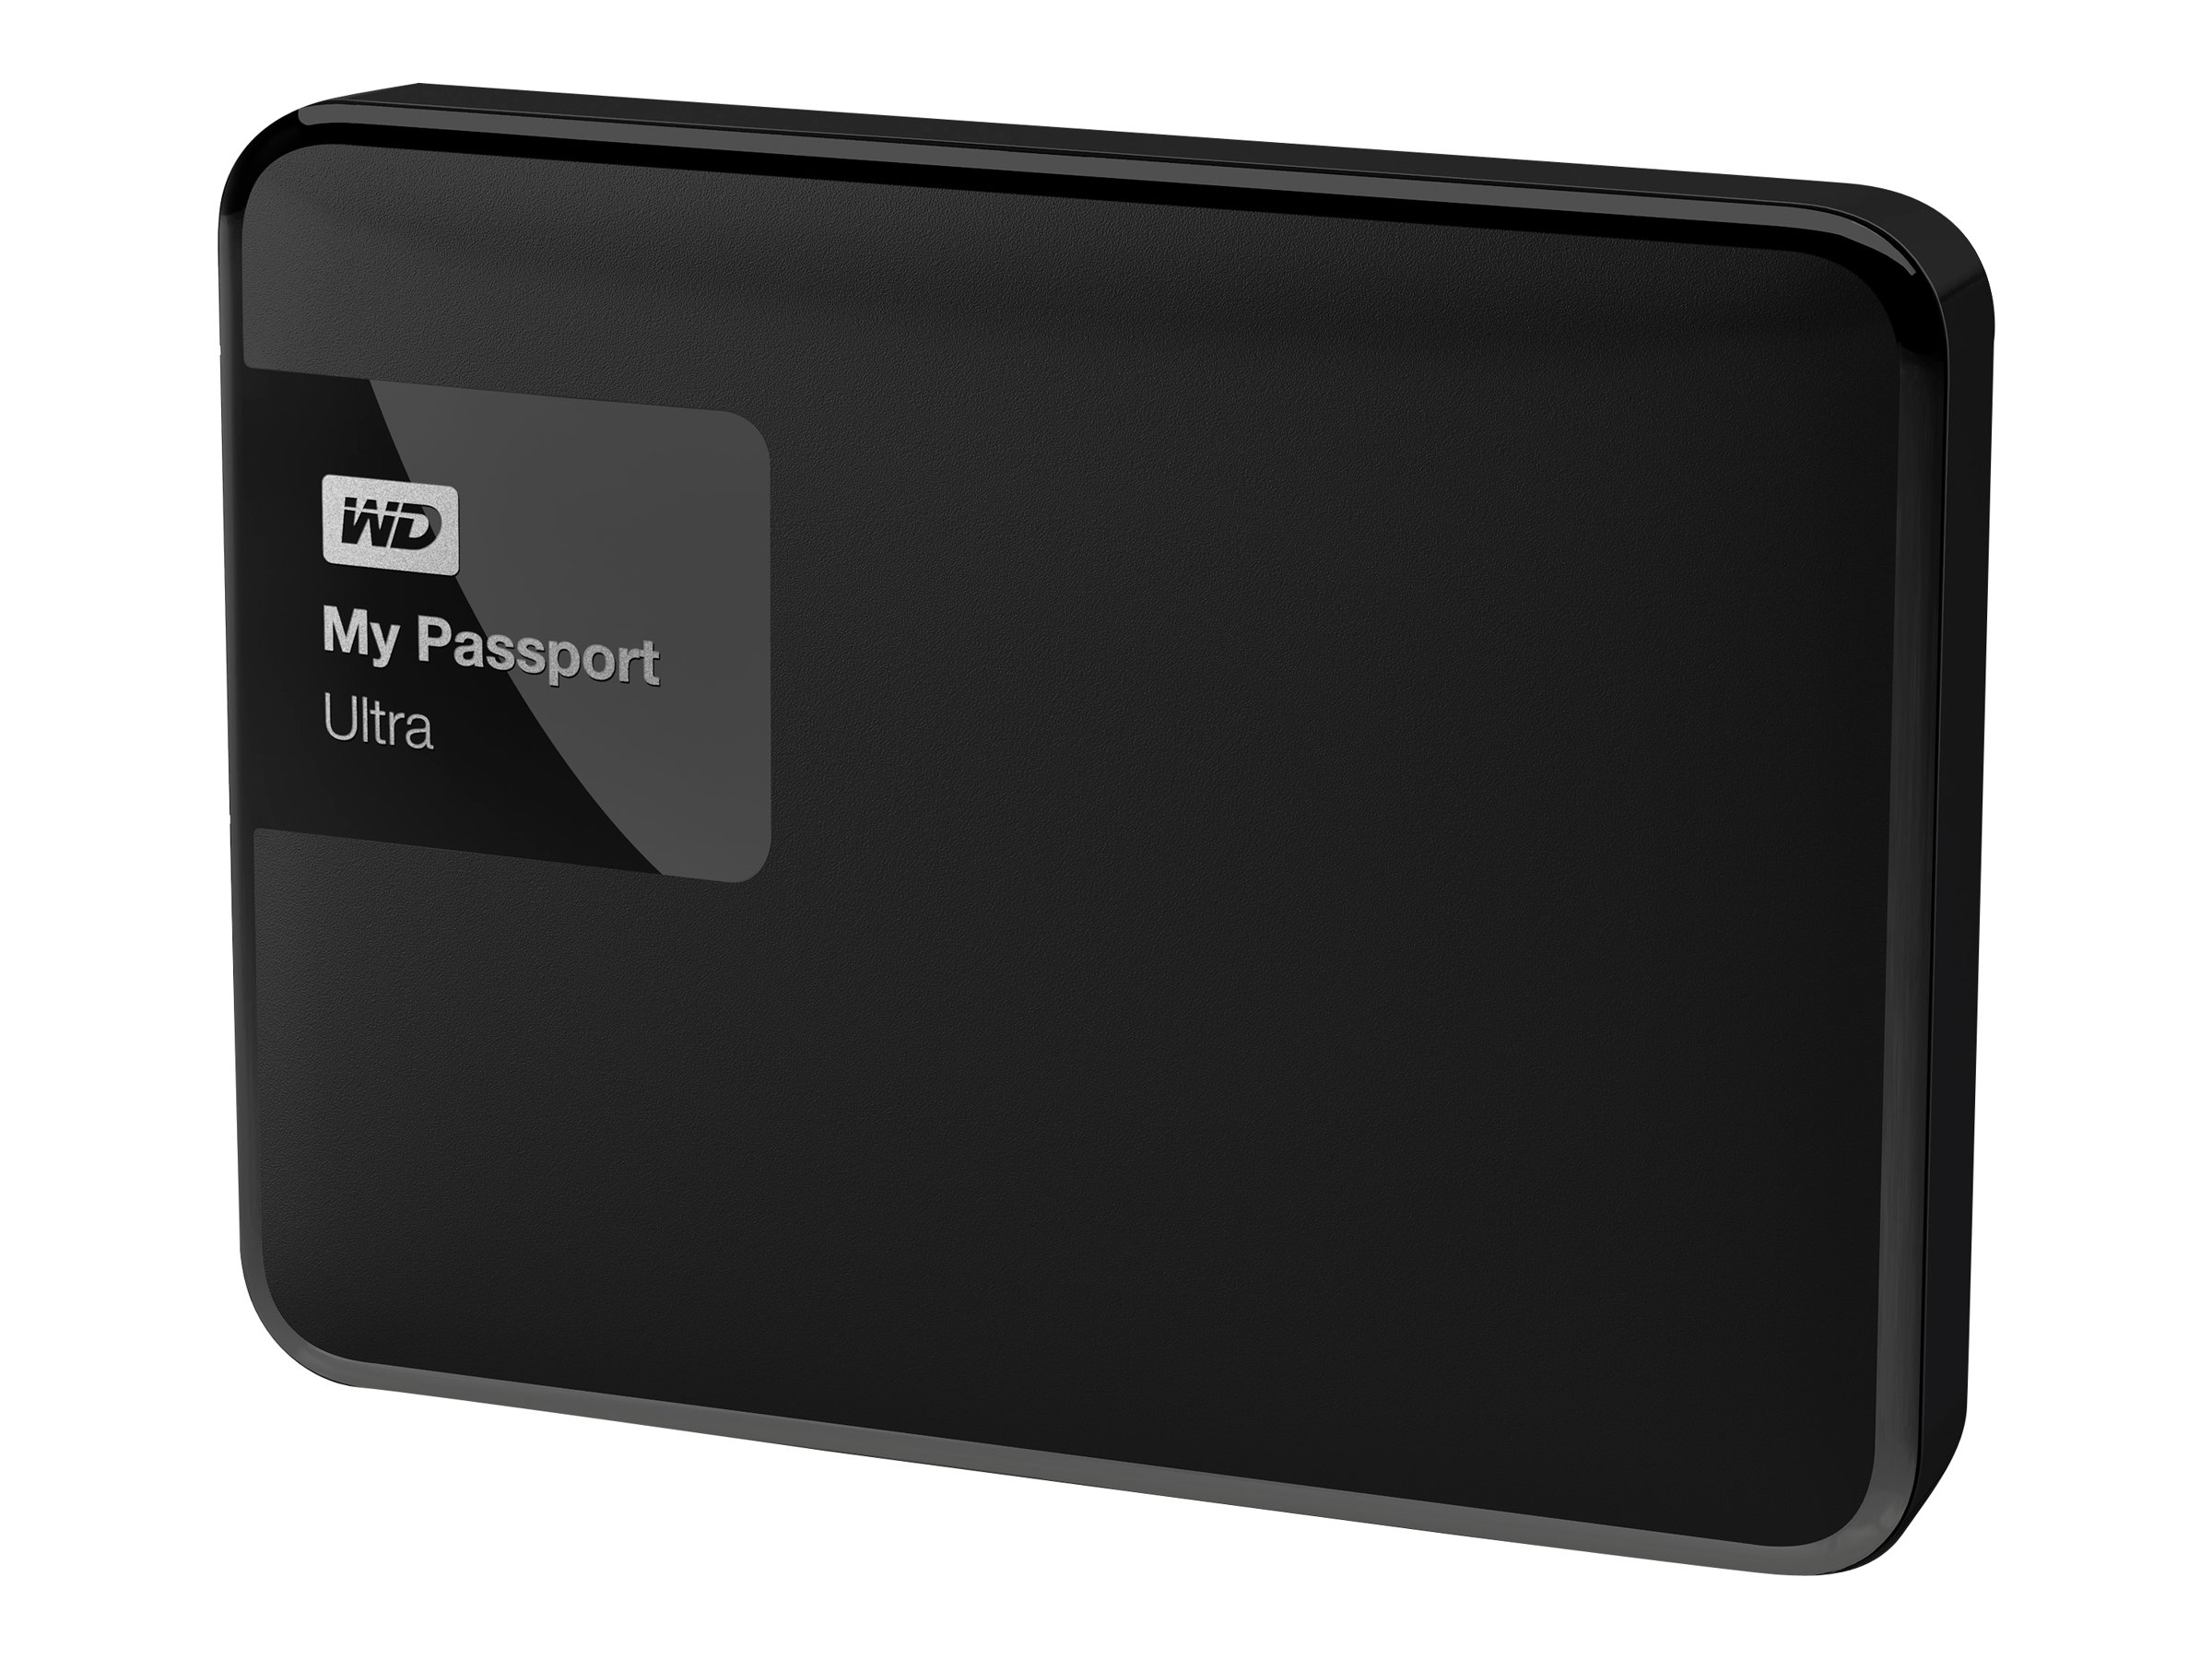 WD 2TB My Passport Ultra USB 3.0 Portable Hard Drive - Black